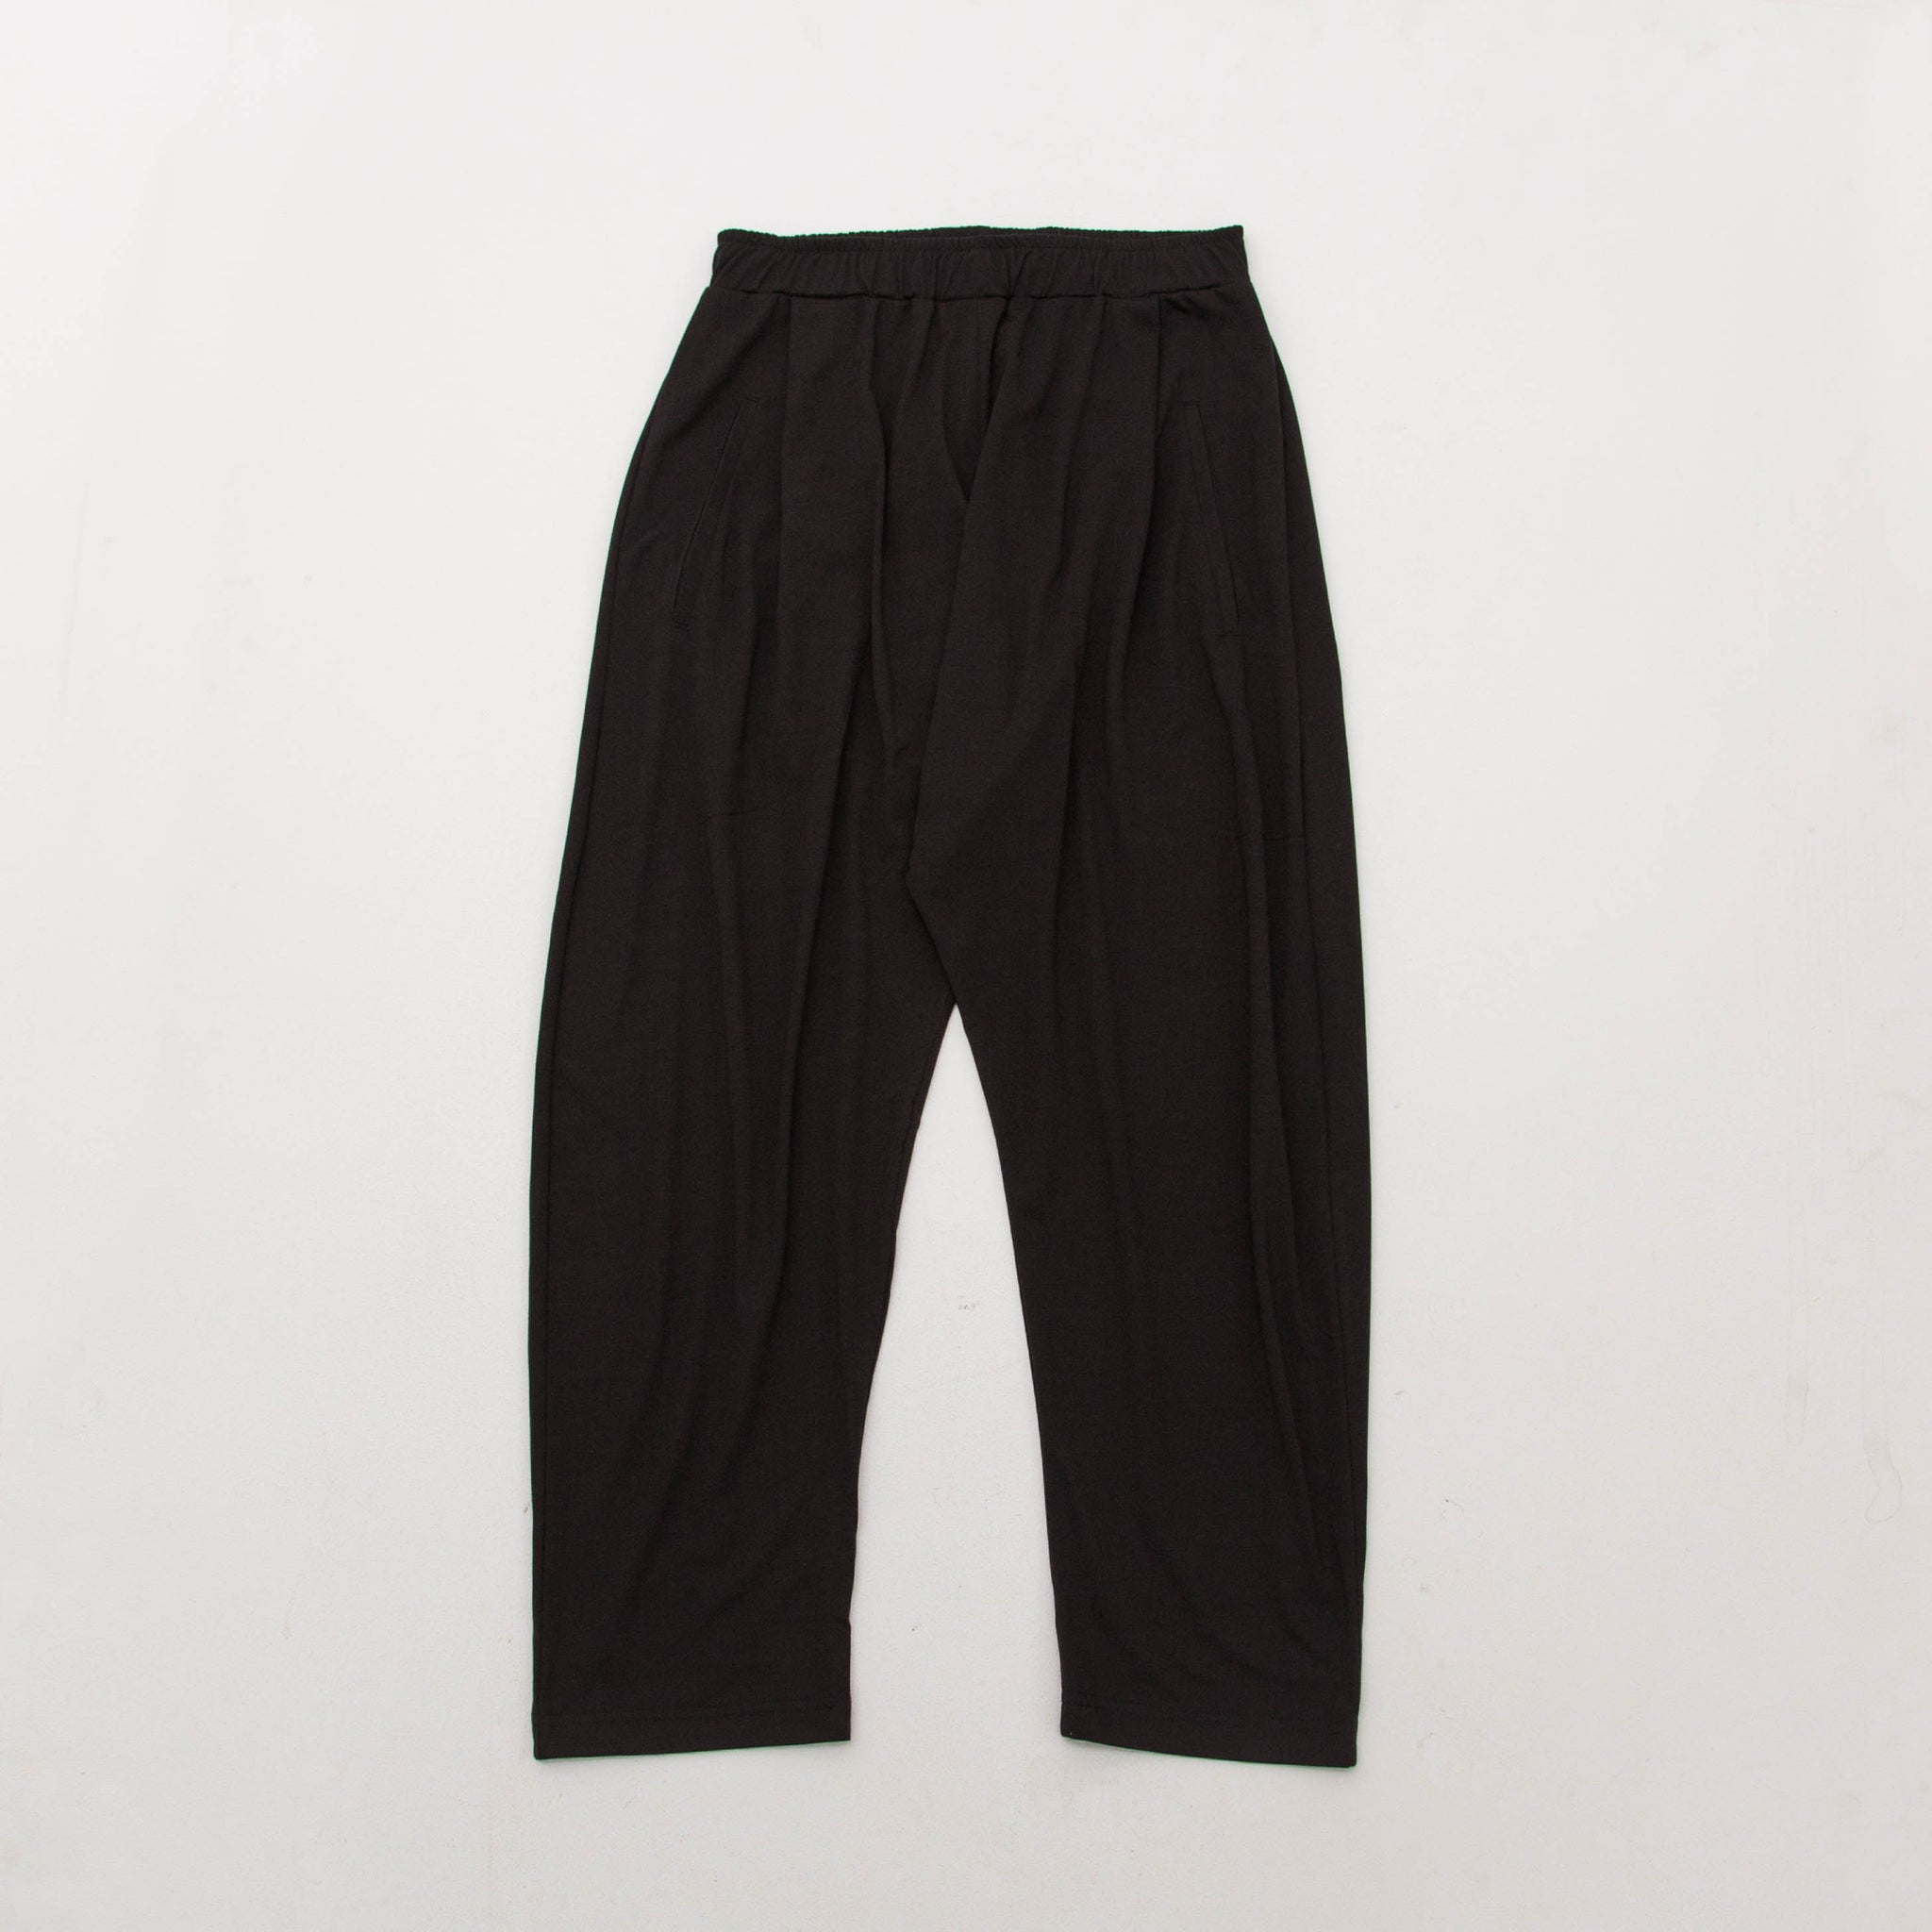 Good Good Good Sunday Trousers - Black - Front | AStore